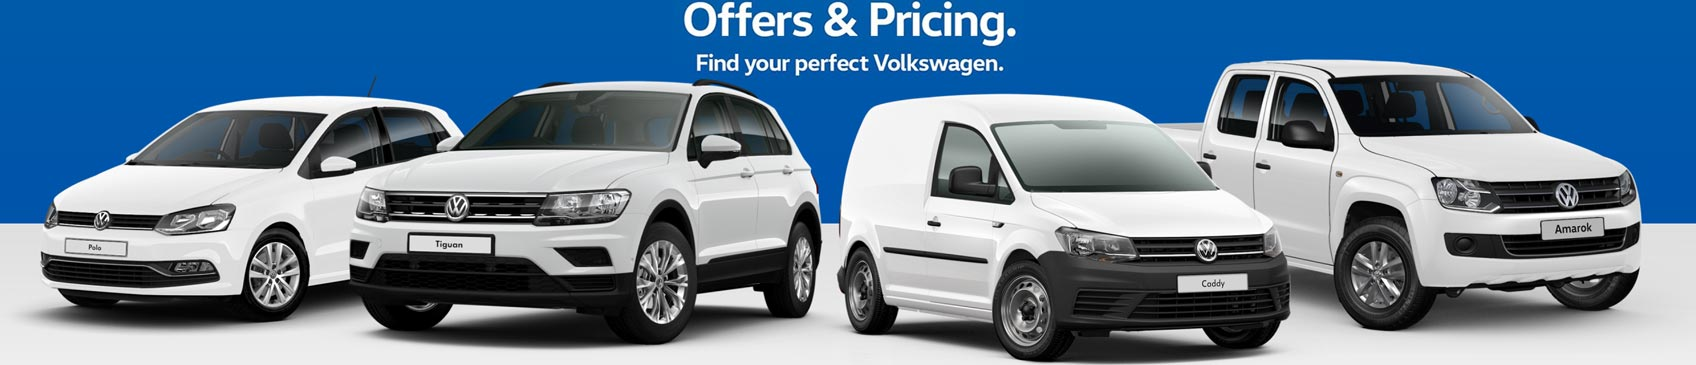 Volkswagen offers and pricing. Find your perfect Volkswagen at NMG Volkswagen in Brisbane.